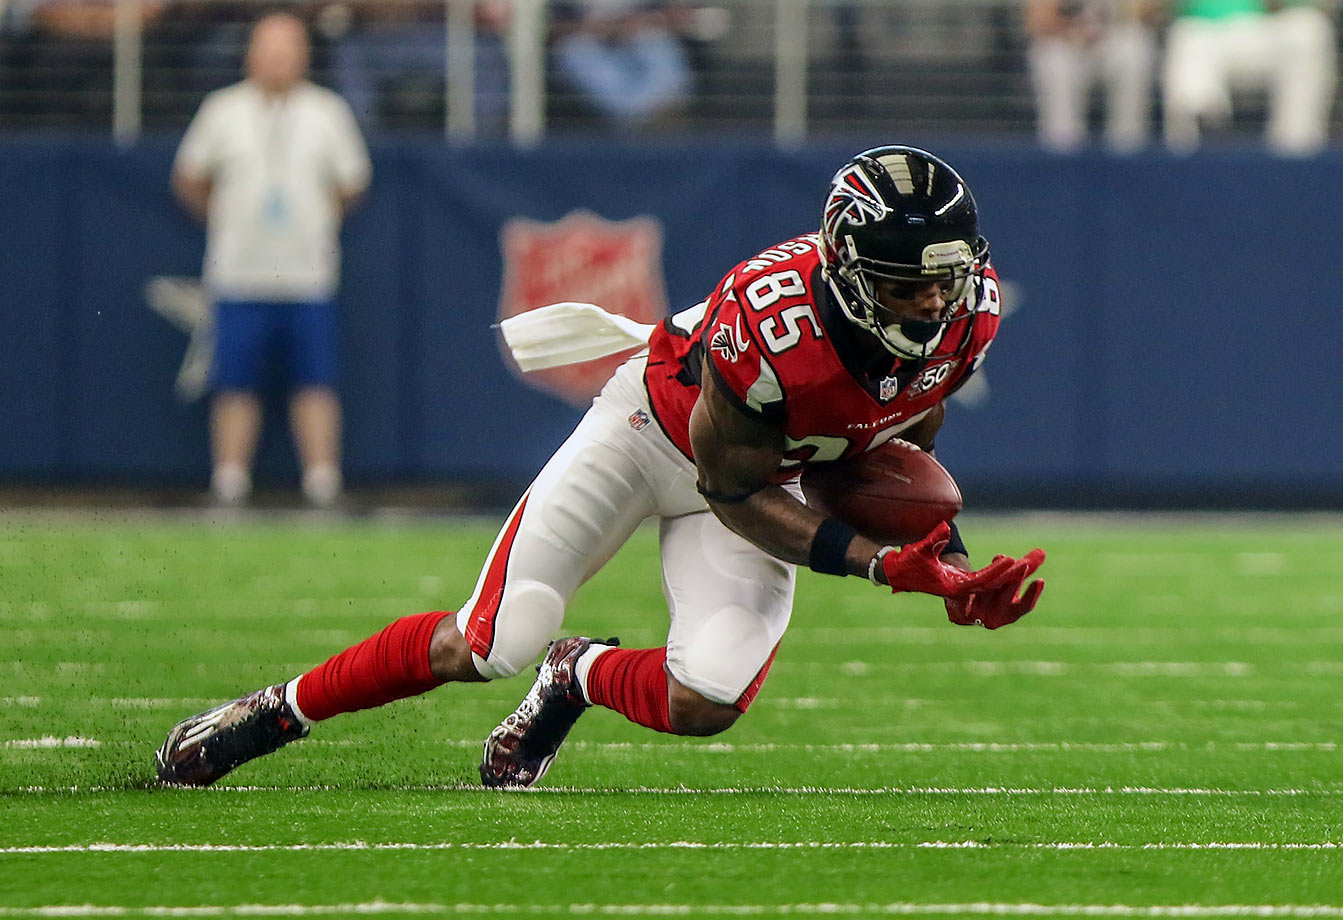 The other members of the top three also have their uses as return men, so they have an excuse for their drop rates. Hankerson adds no such value on special teams, and it's unclear why he's been featured so prominently in Atlanta's offense. Roddy White has never had the greatest hands himself—he led the NFL with 15 drops in 2011, and posted a below-average 8.2% drop rate last season. But it's baffling why the Falcons have elected to upset their longest-tenured player by giving his No. 2 WR role to a player who played just 23 snaps for Washington last year, recording zero targets. Hankerson tweaked his hamstring in a victory against the Titans in Week 7, possibly giving White another shot to replace a guy who might just have the worst hands of any professional wideout.